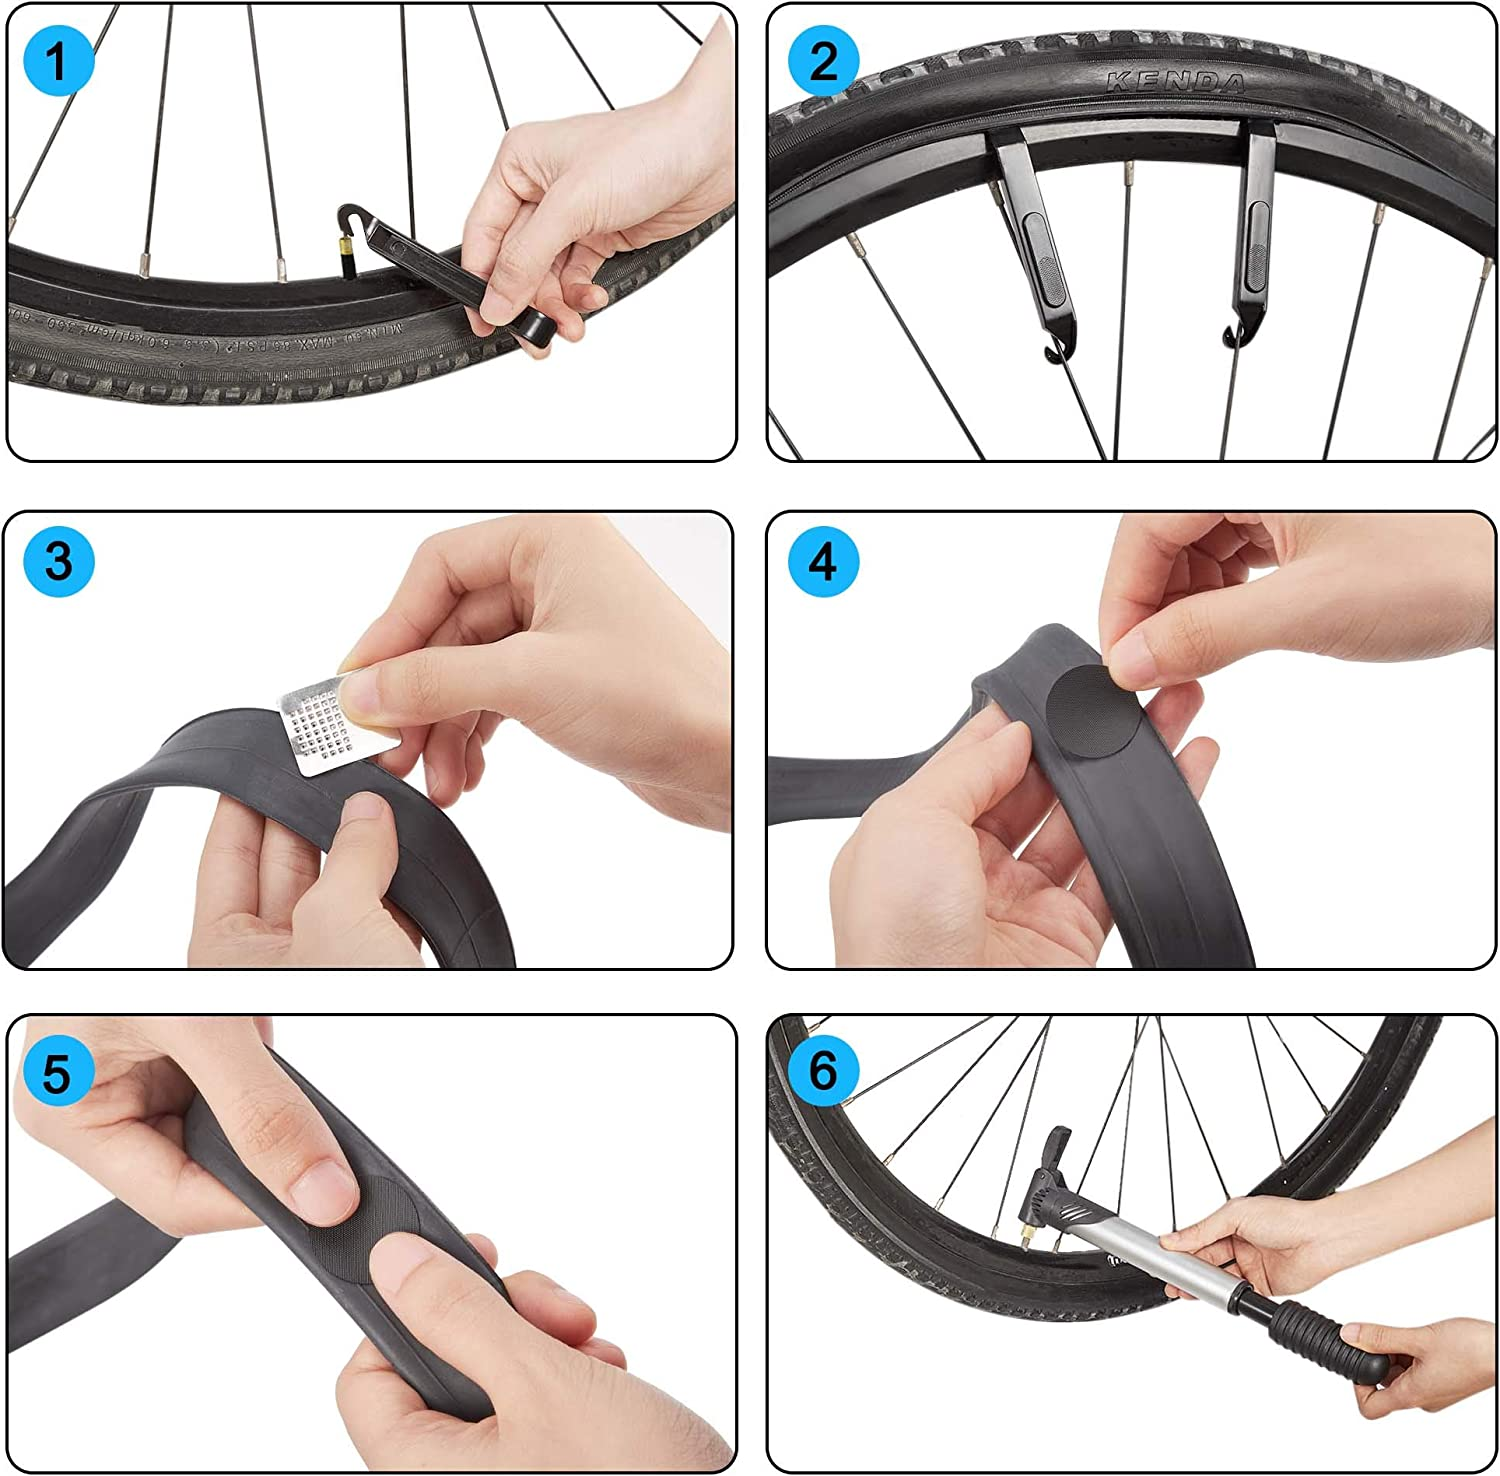 TOMALL Portable Bike Repair Tools Kits Inner Tube Patch Bicycle Repair Patch Puncture Emergency Tire Fix Kit